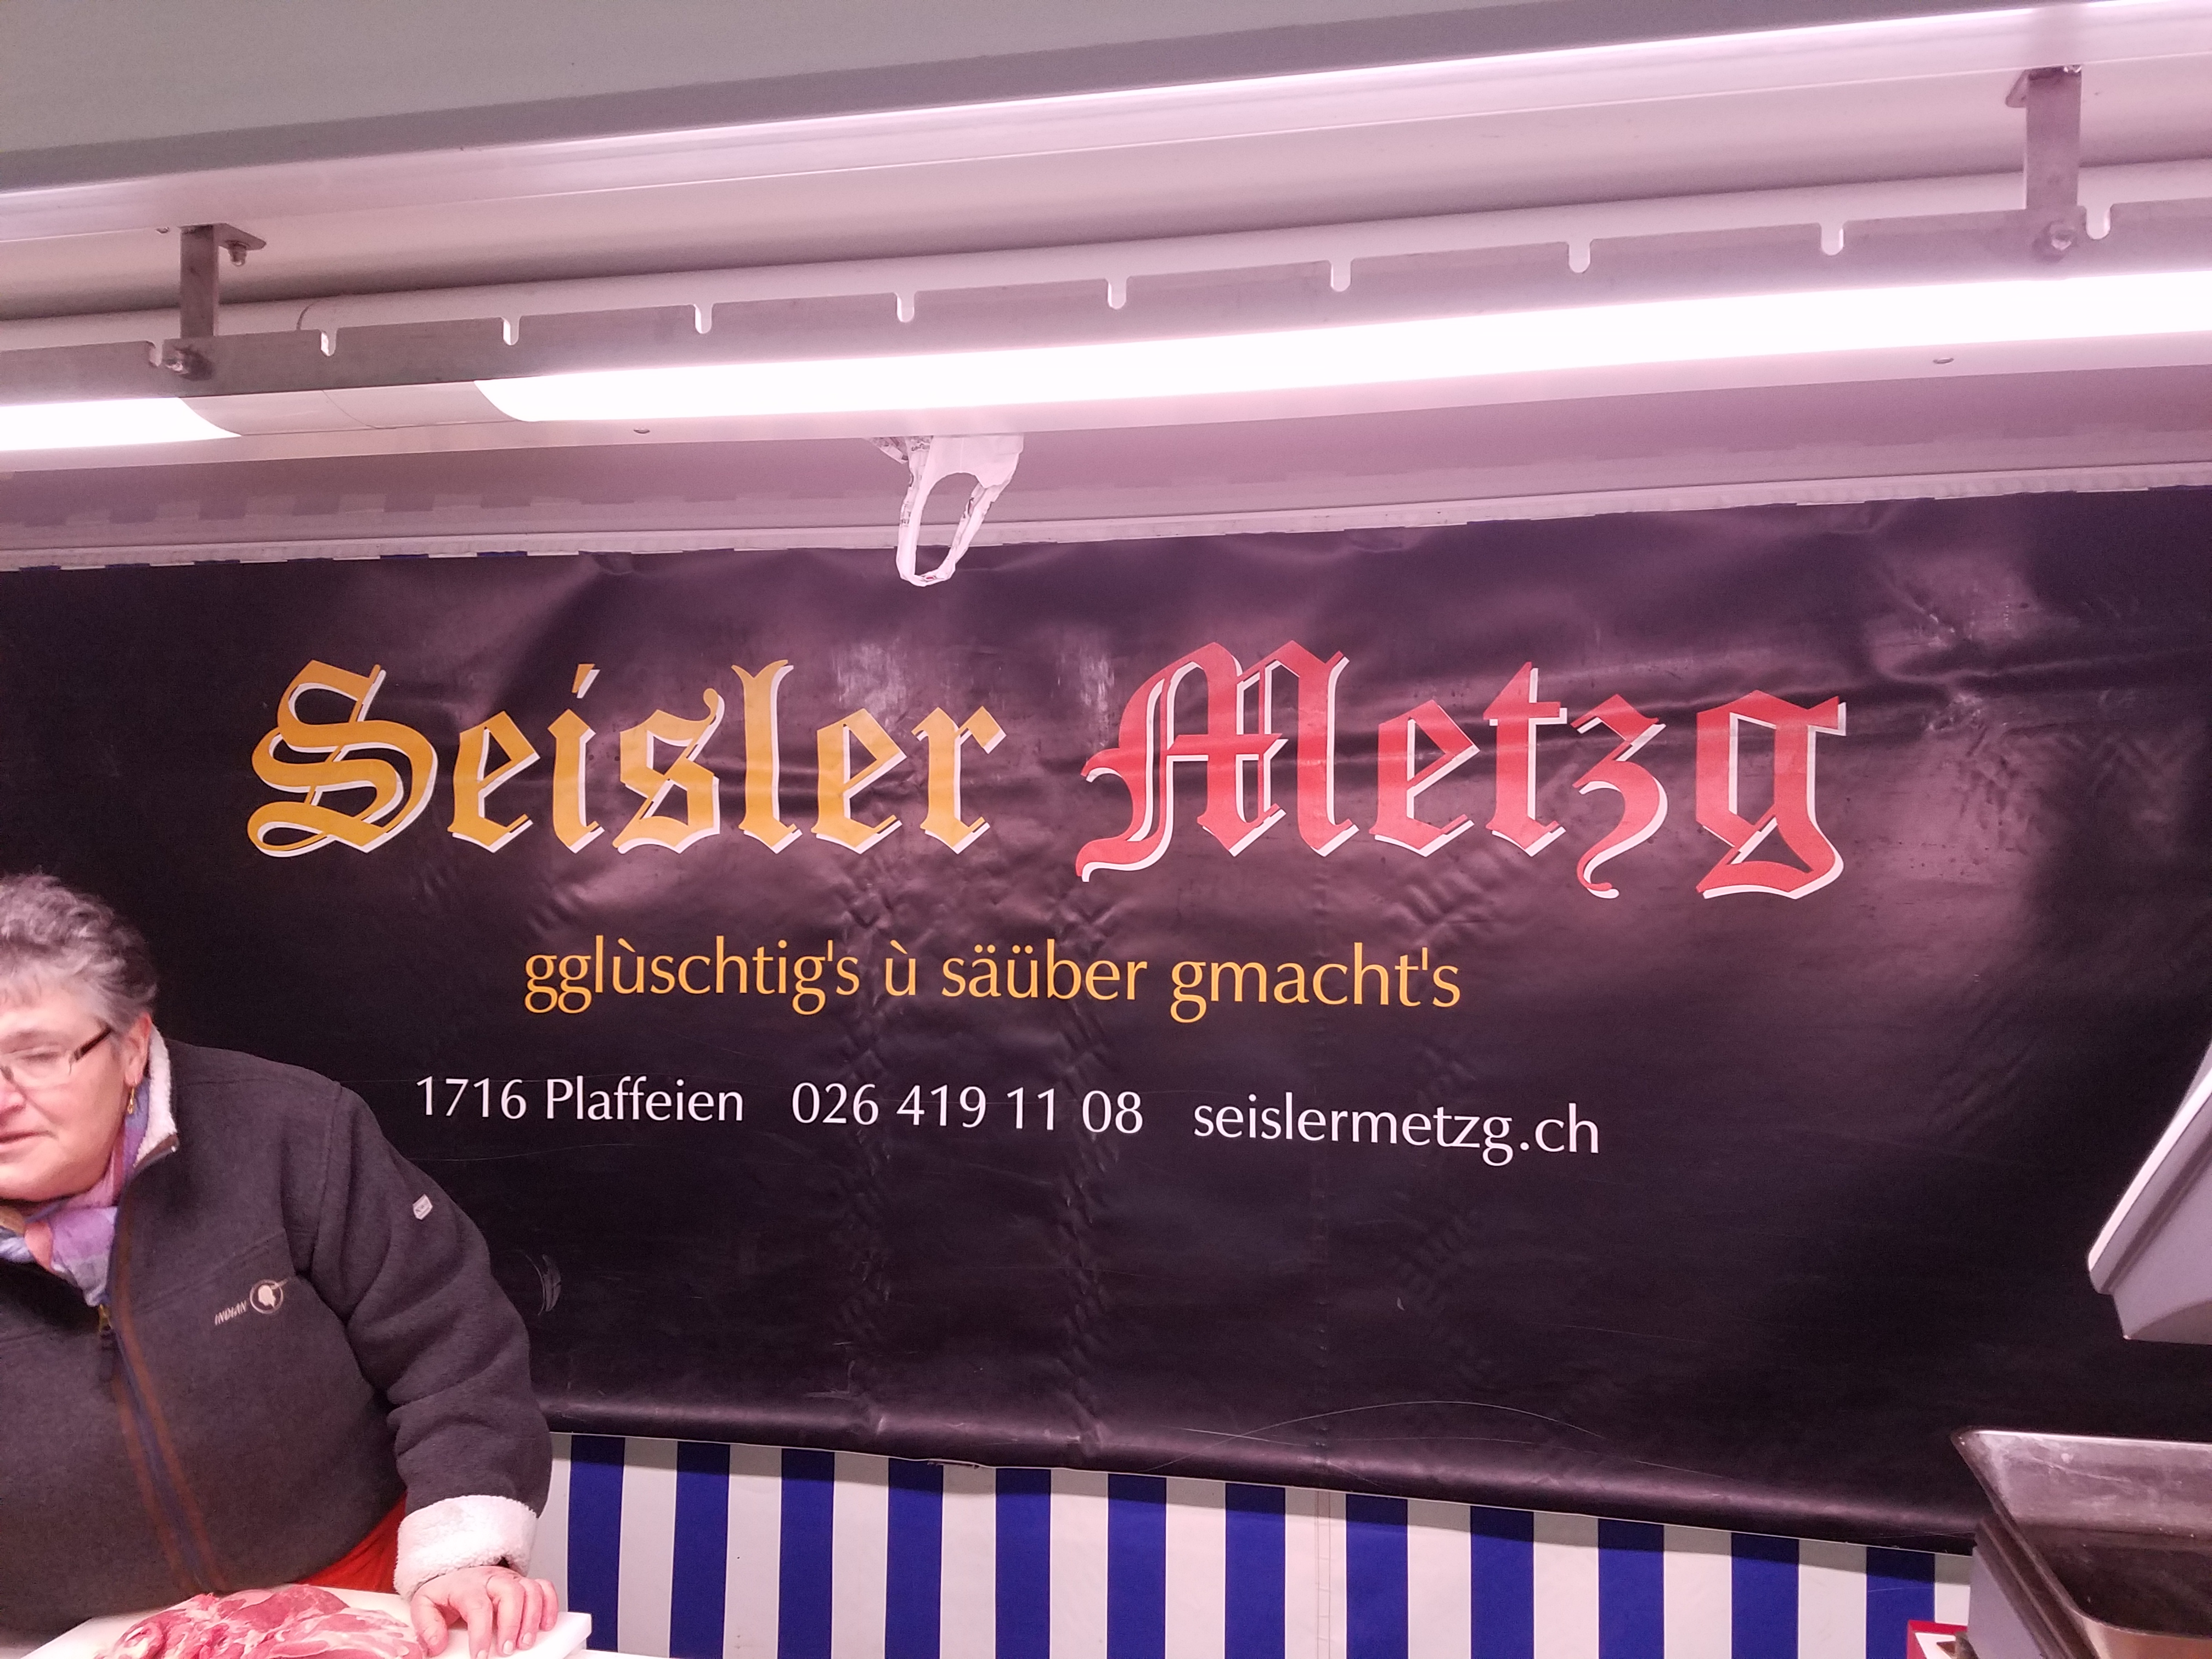 Swiss-German Butcher sign - Gamesforlanguage.com